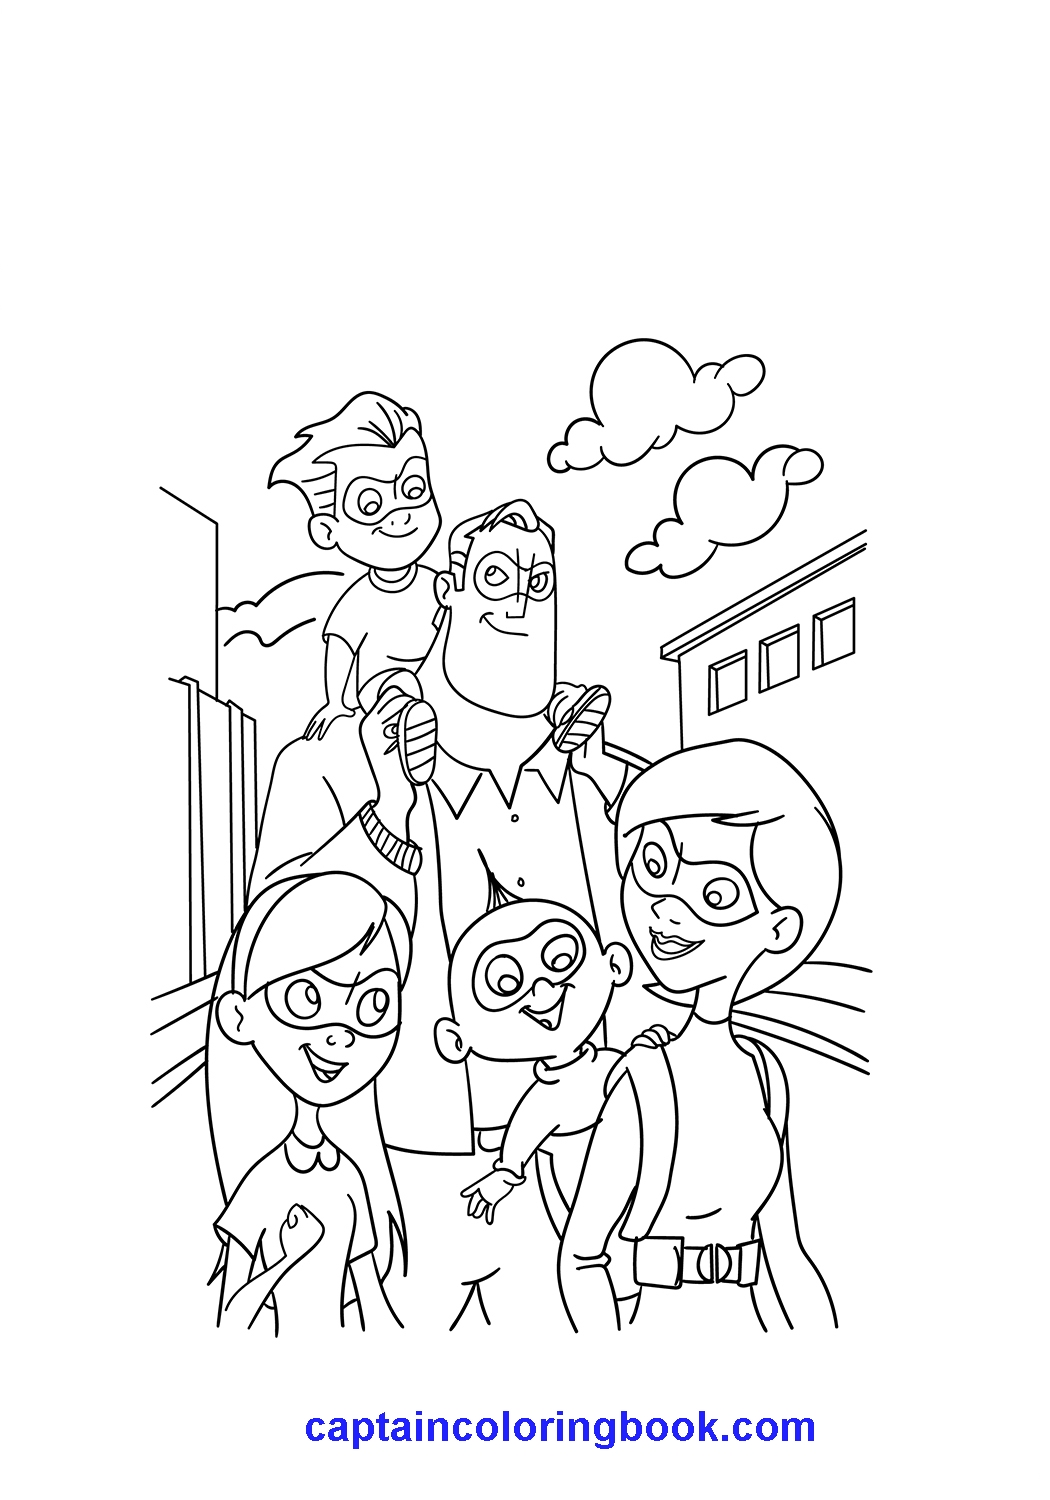 family incredibles 2 coloring pages the incredibles whole family coloring page download pages coloring 2 family incredibles